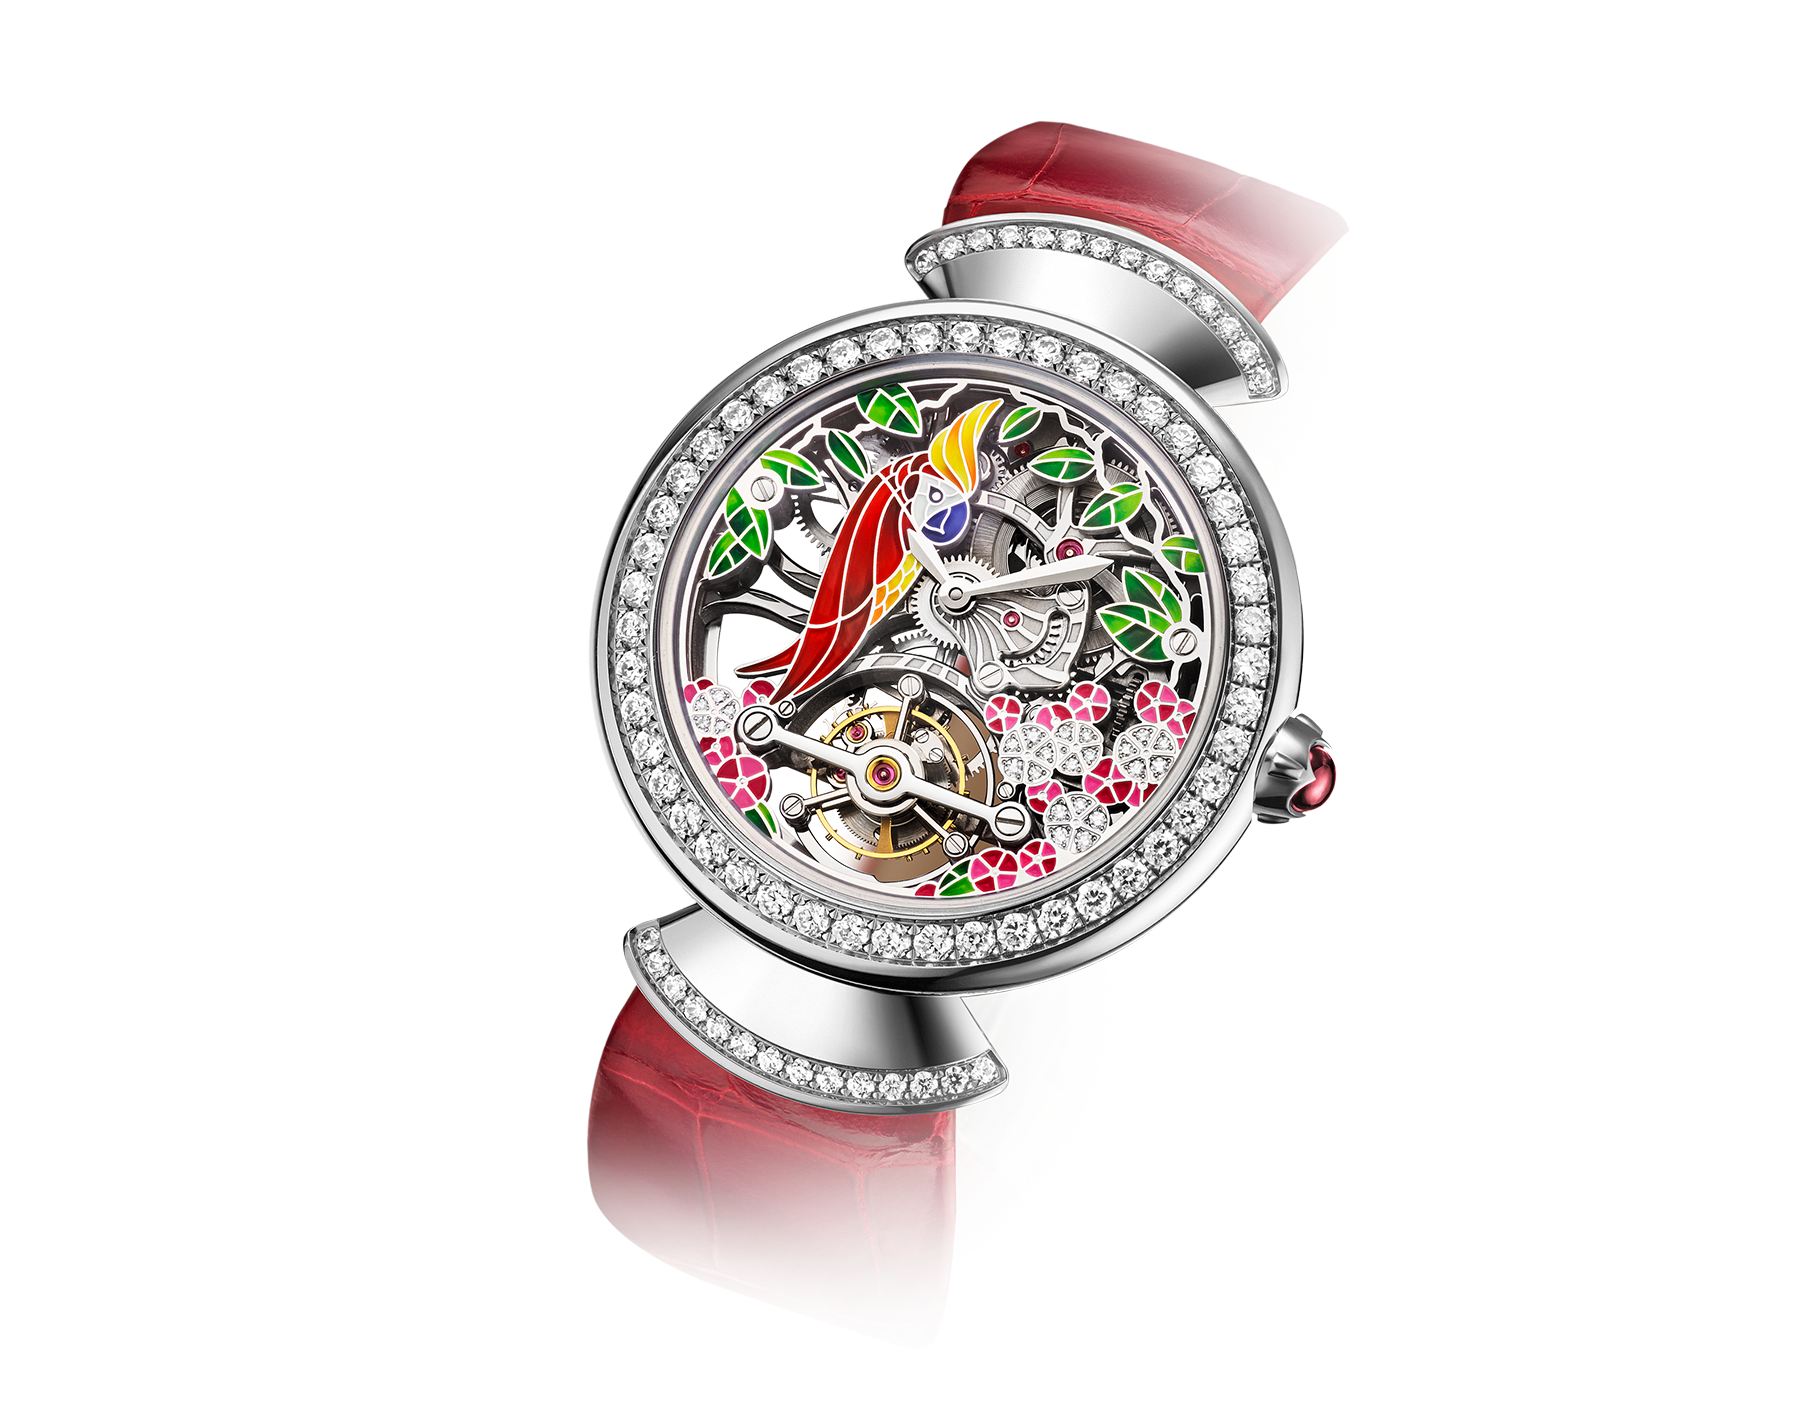 DIVAS' DREAM watch with 18kt white gold mechanical manufacture skeletonized movement and tourbillon. 18 kt white gold case set with brilliant-cut diamonds, dial with hand painted parrot, flowers and leaves set with diamonds and red alligator bracelet 102517 image 2